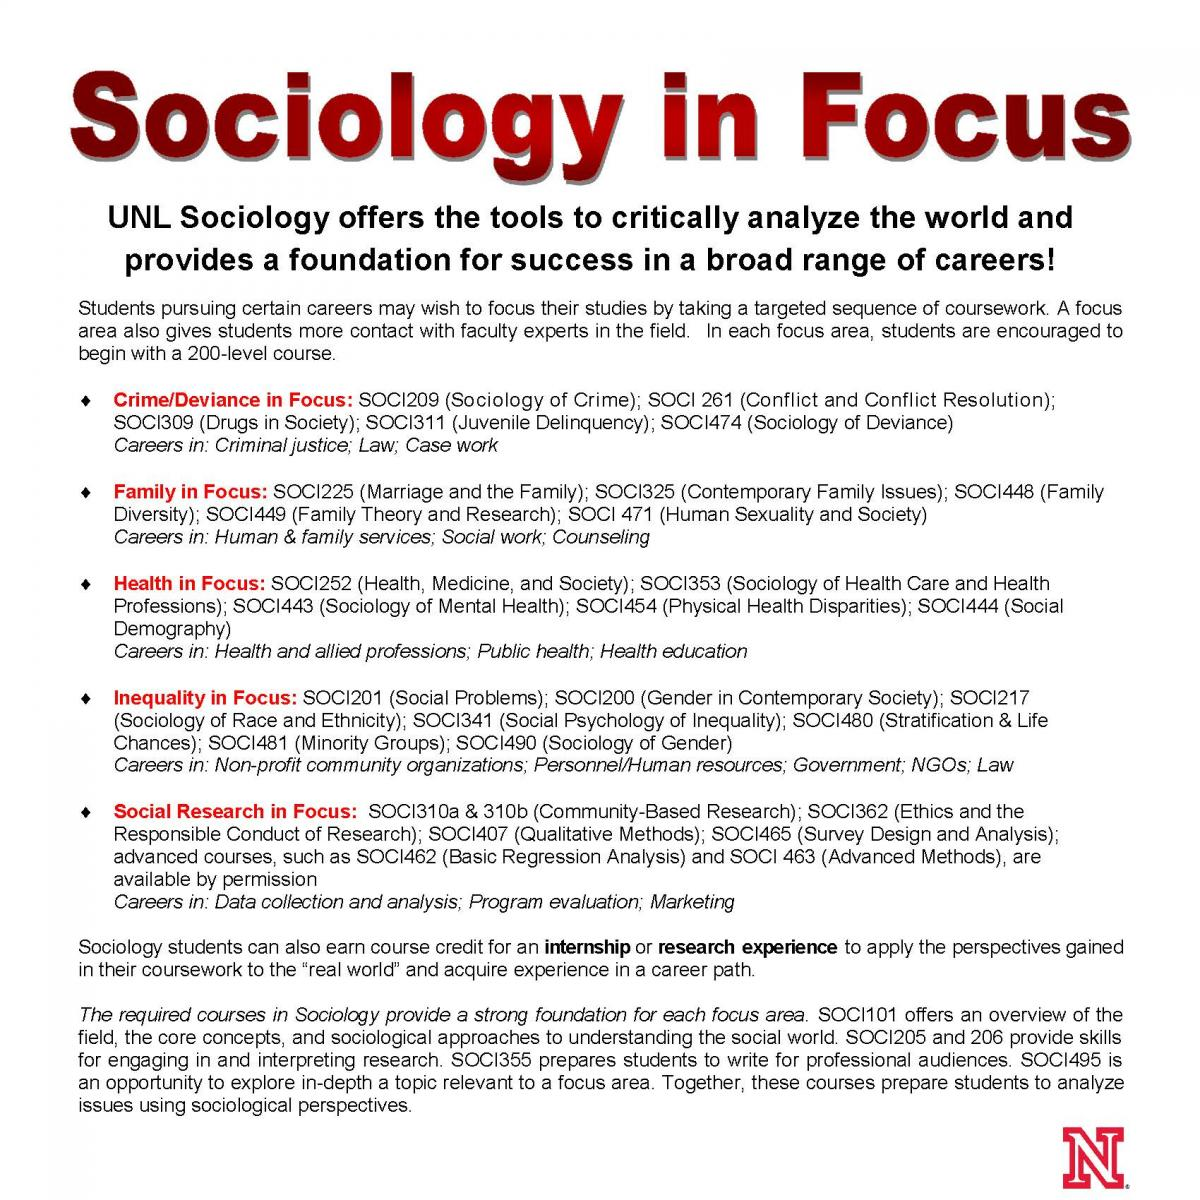 Focus areas in sociology